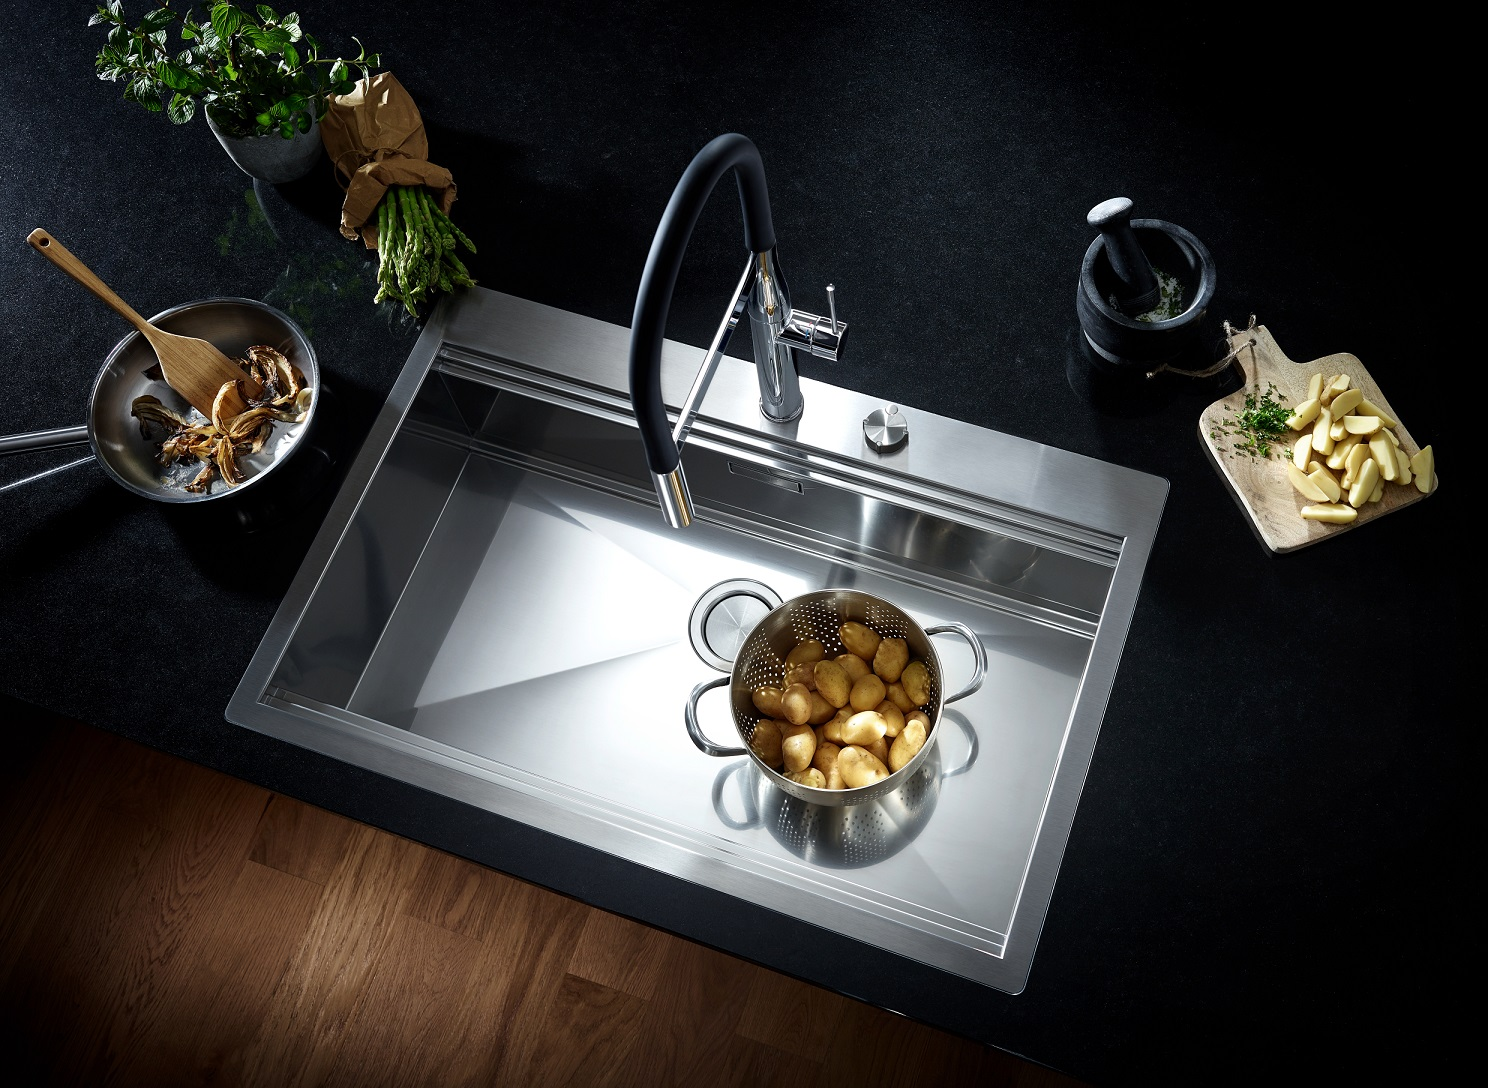 Kitchen Design from a Single Source: GROHE Sets Holistic Design ...